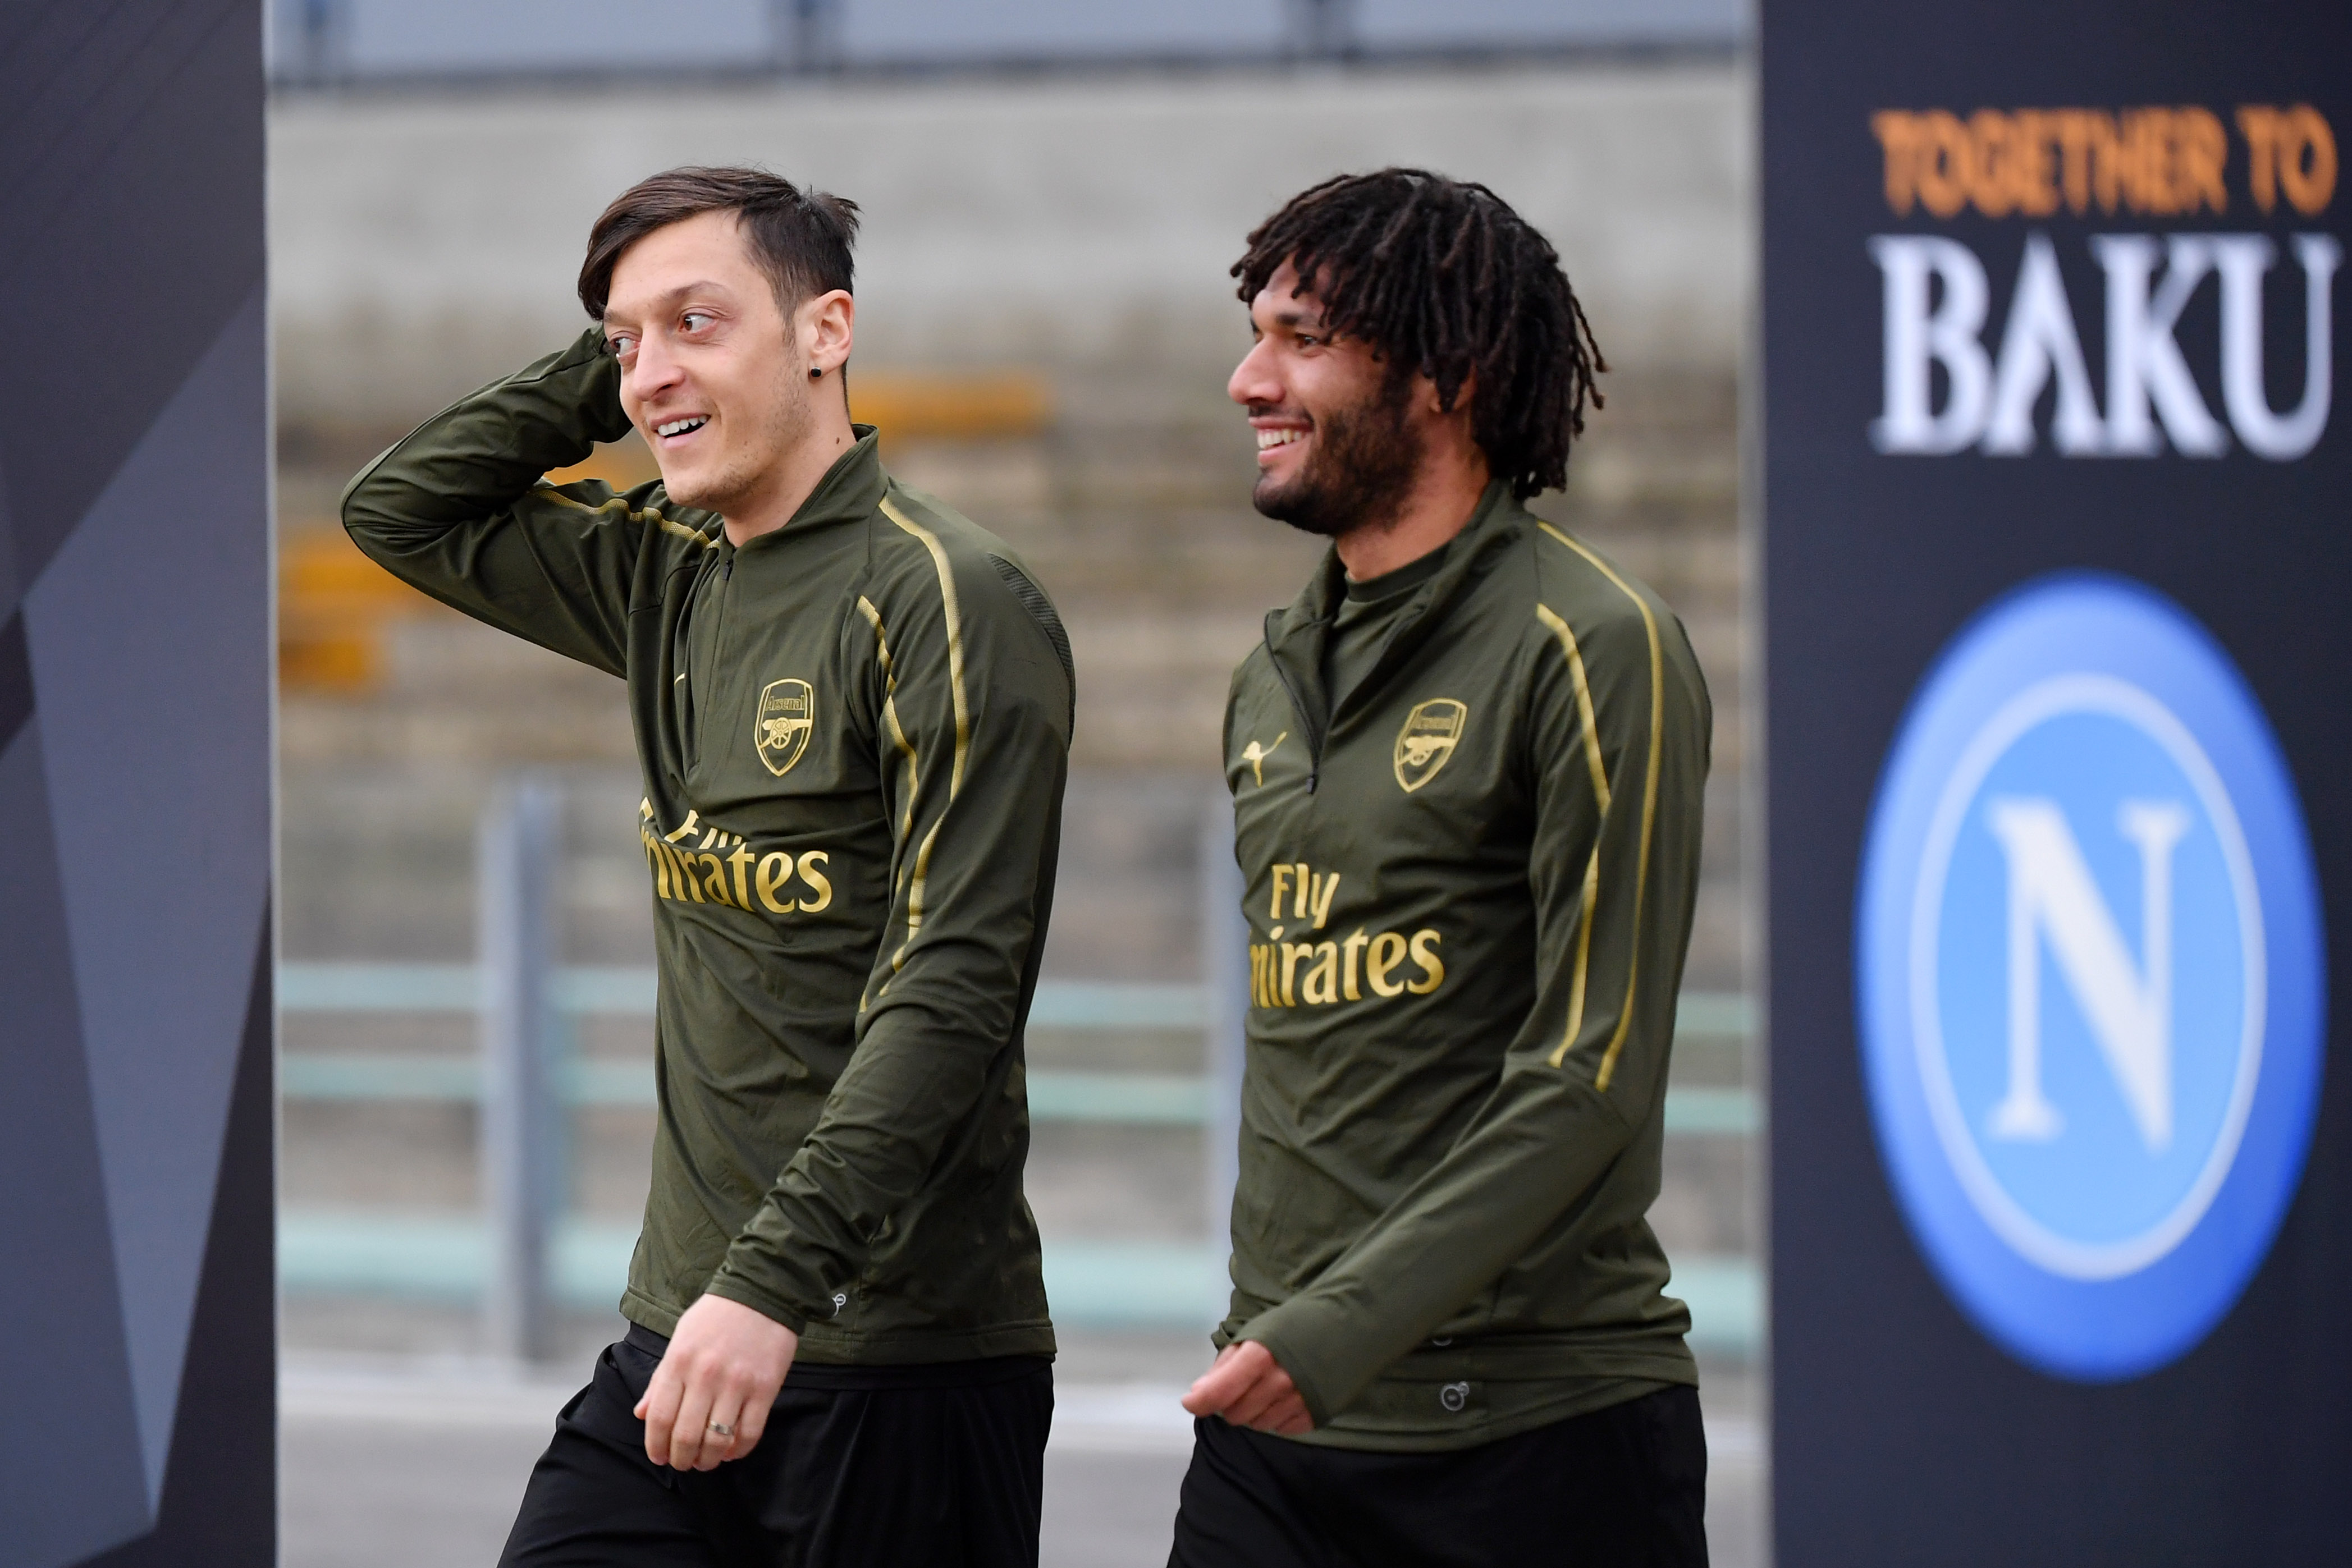 Arsenal vs. Napoli 2019 online streaming: start time, TV schedule, and how to watch Europa League online